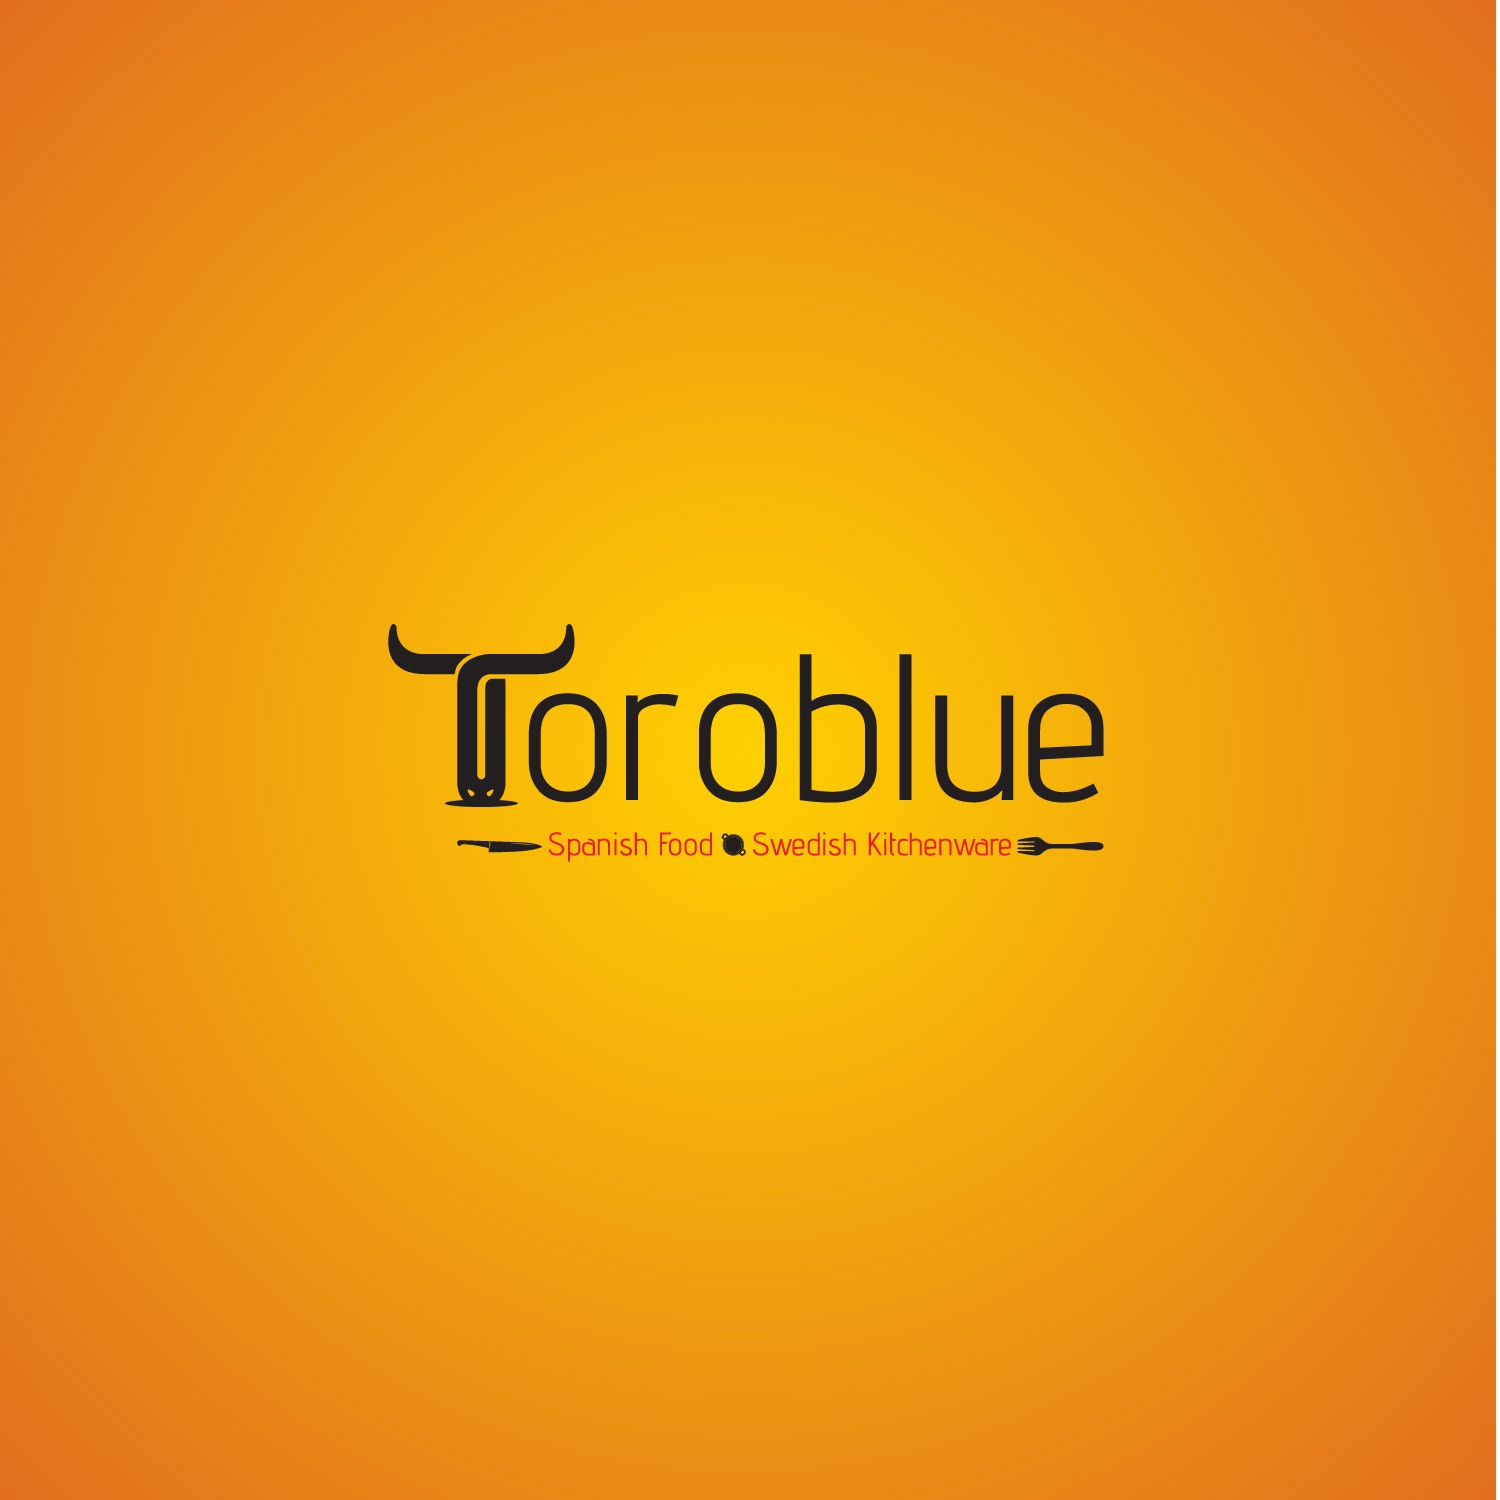 Toroblue - Food from Spain, Things from Sweden